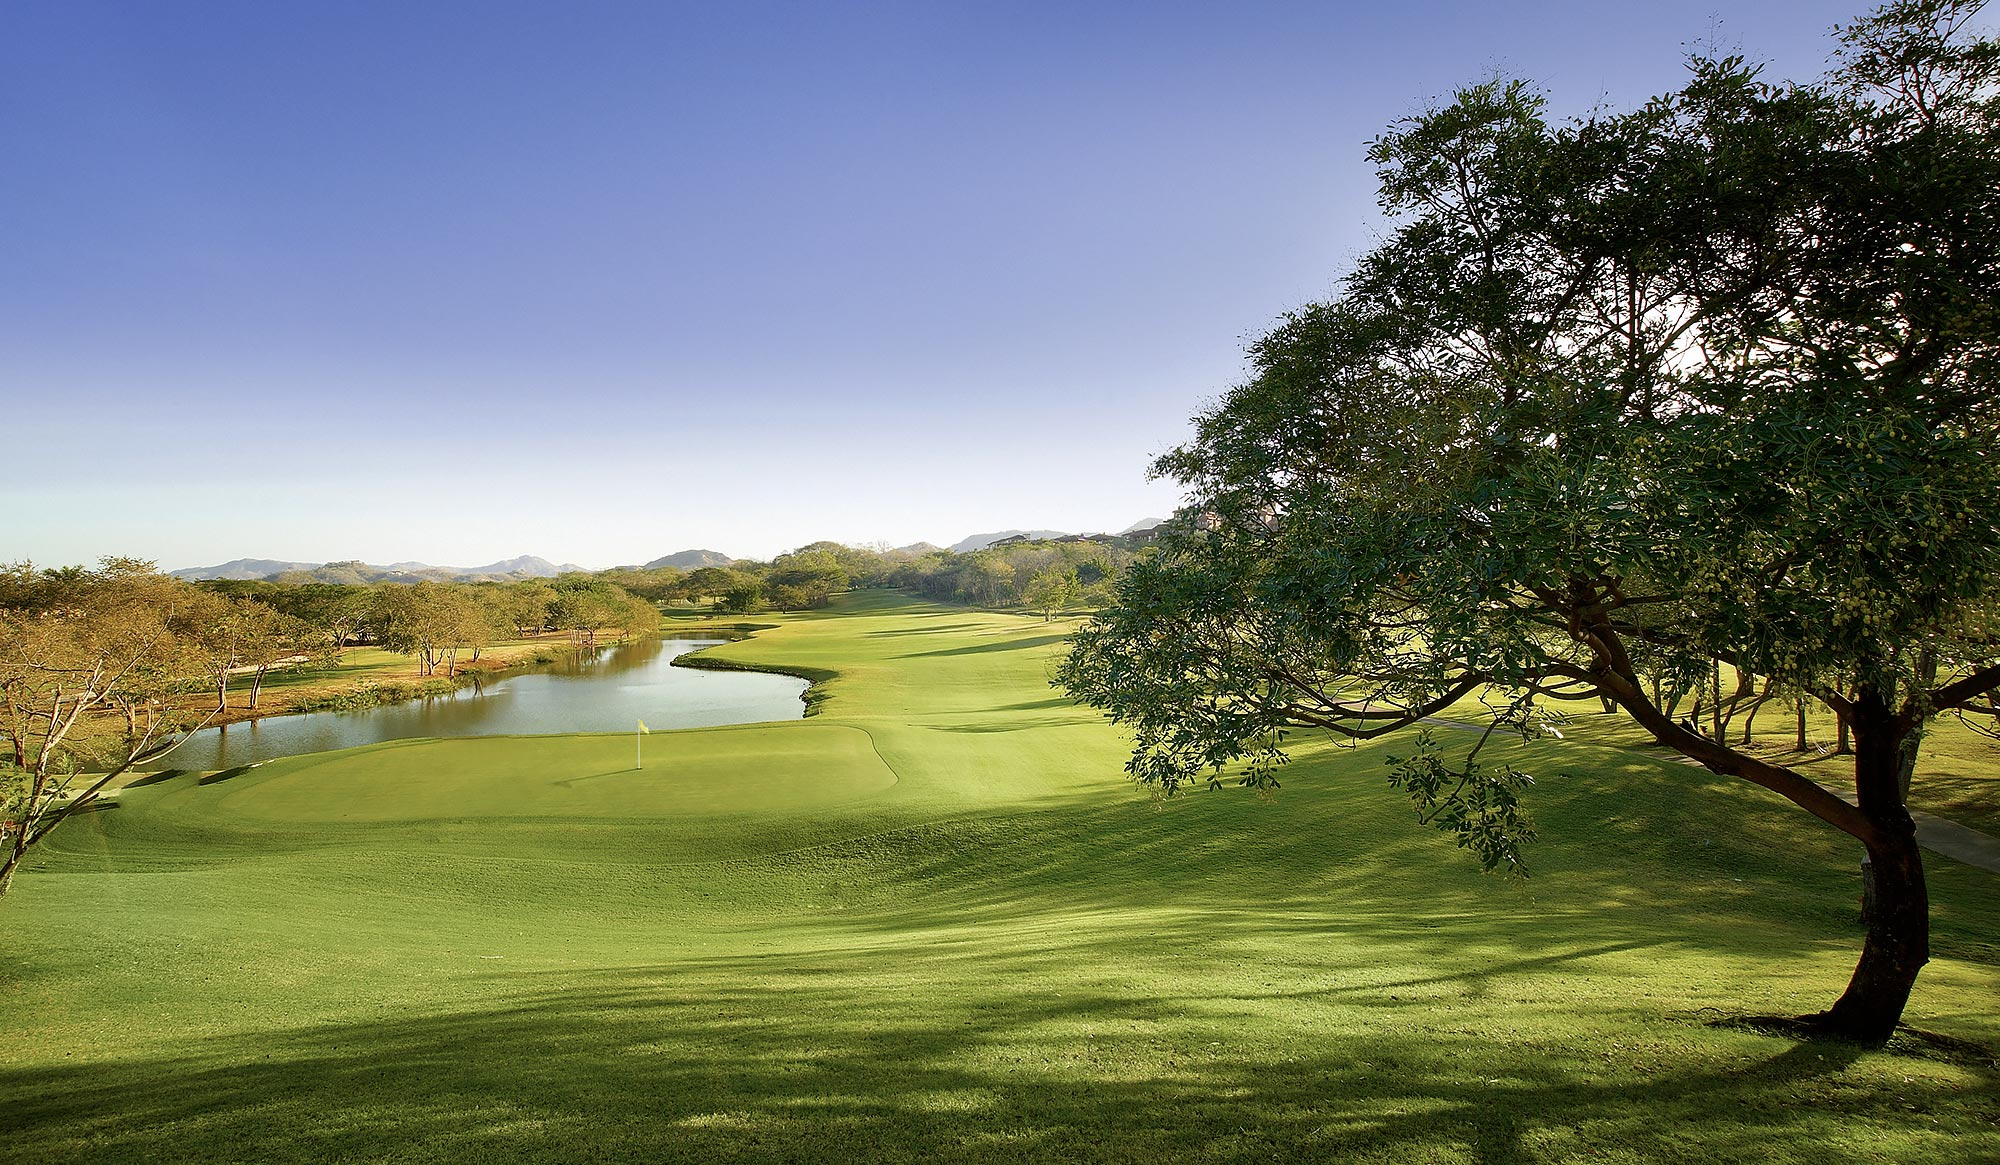 Golf-Course-Resort-Costa-Rica-Playa-Conchal